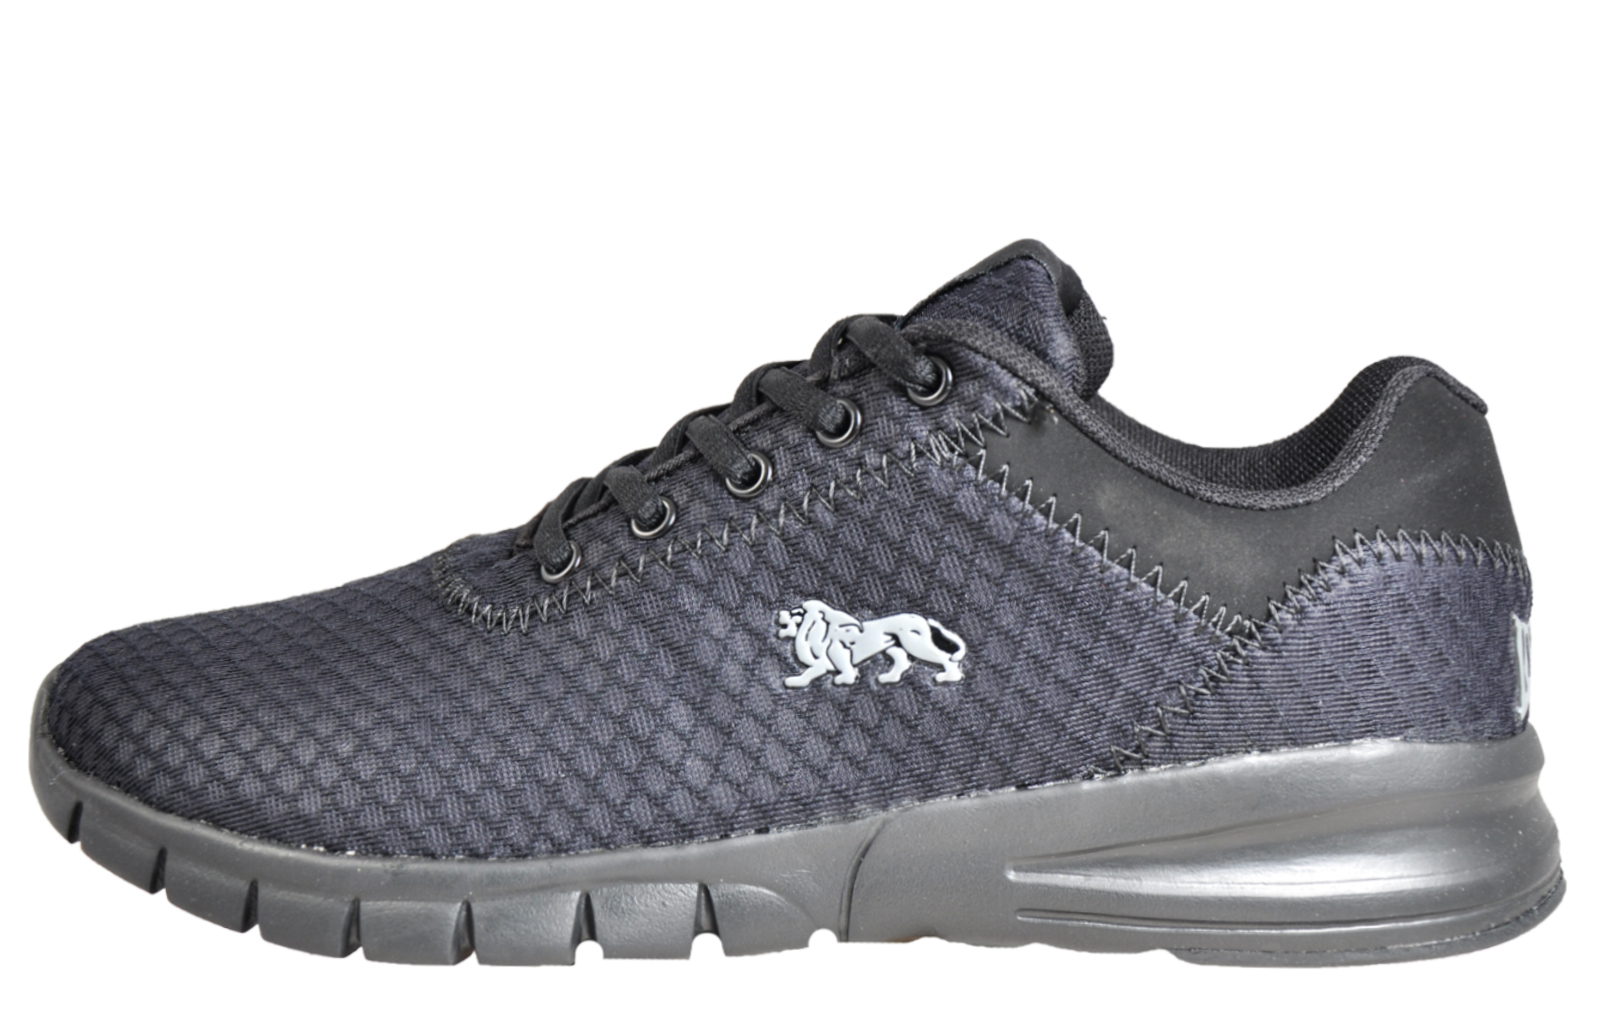 Lonsdale Tydro Flexlite Mens Running Shoes Fitness Gym Trainers